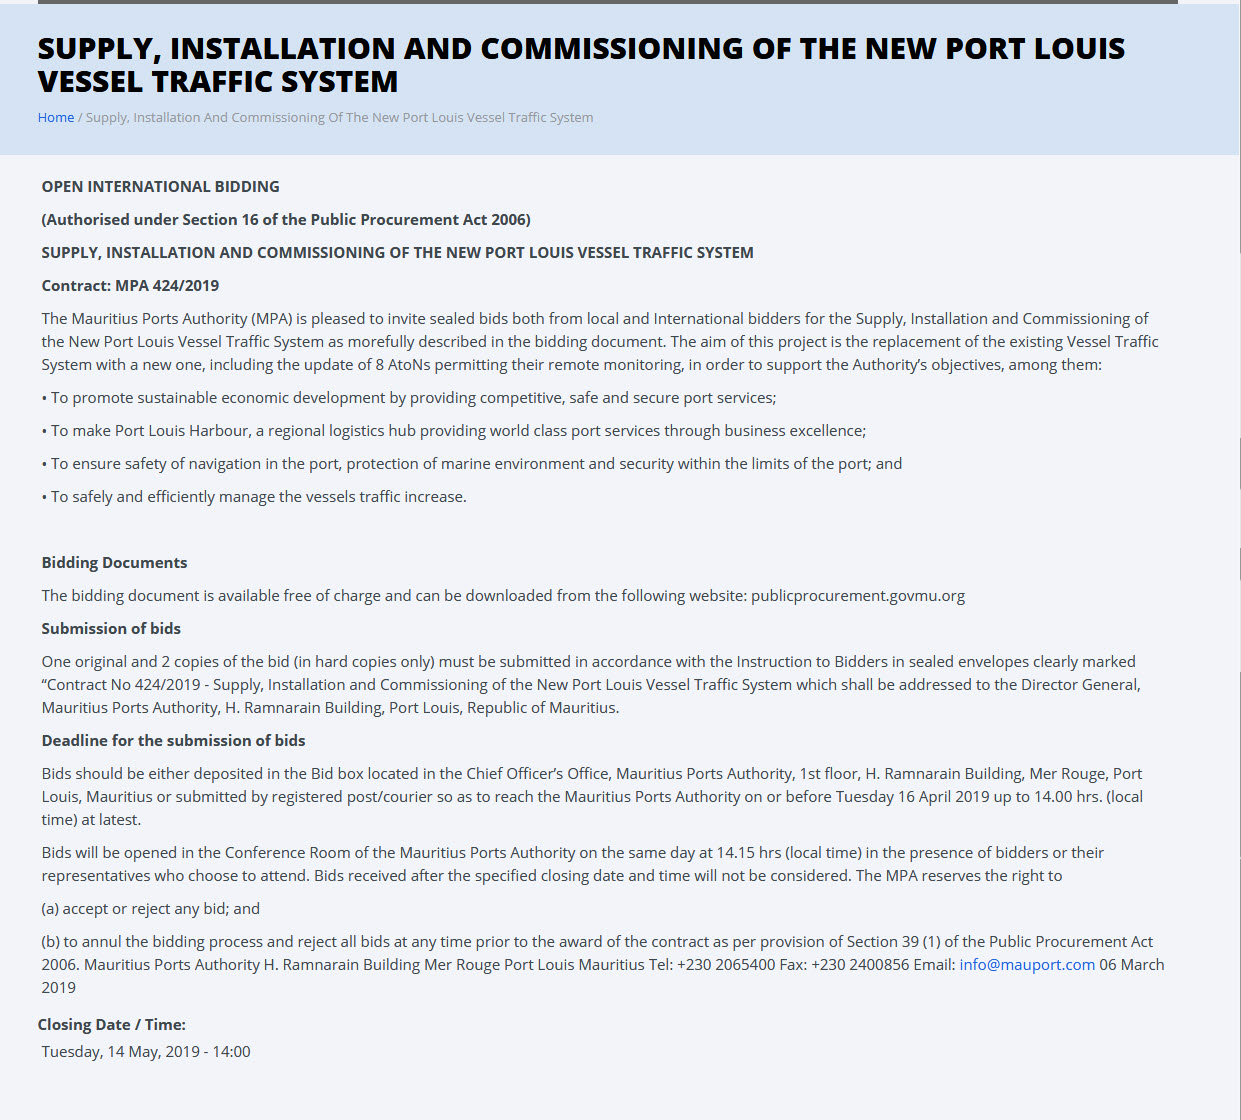 Supply, Installation and Commissioning of the New Port Louis Vessel Traffic System